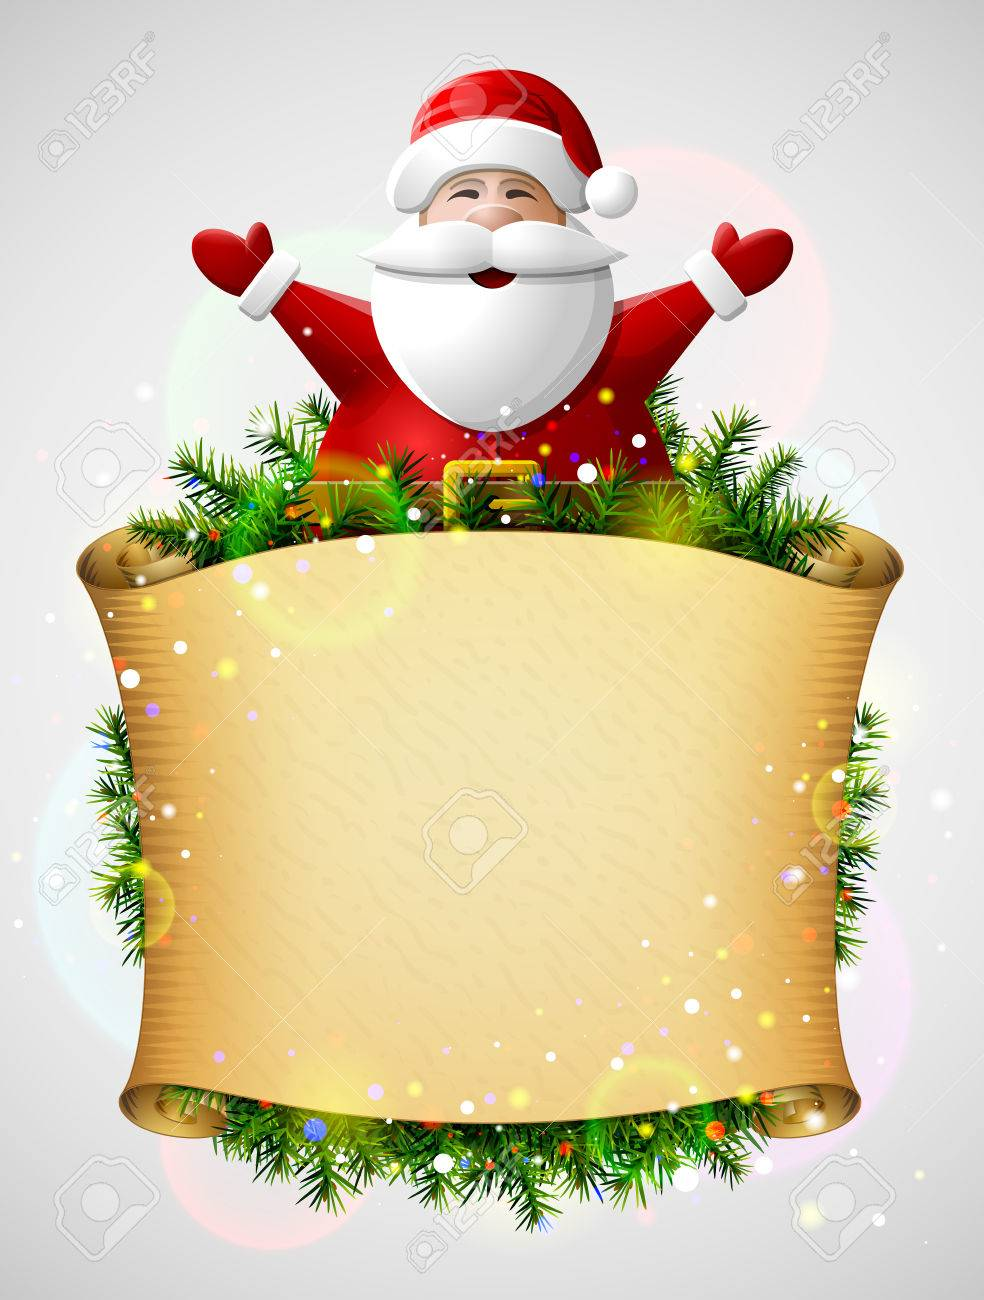 Santa Claus With His Hands Up Above Christmas Paper Scroll. New ...